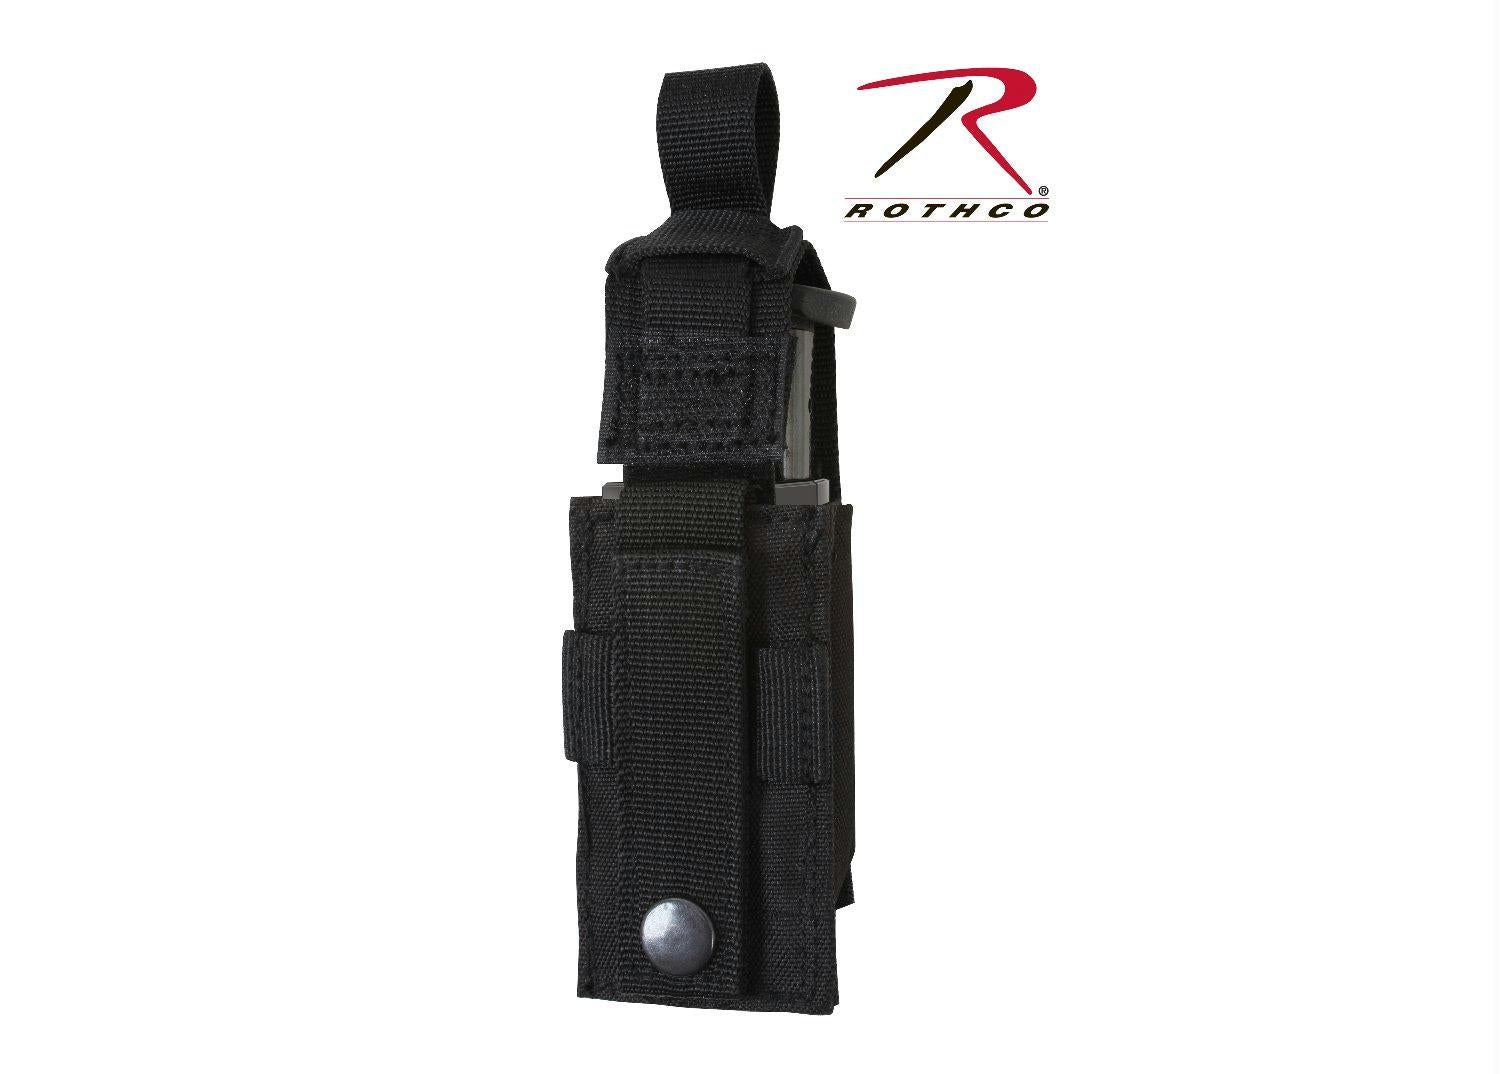 Rothco Single Pistol Mag Pouch With Insert - Molle - Black